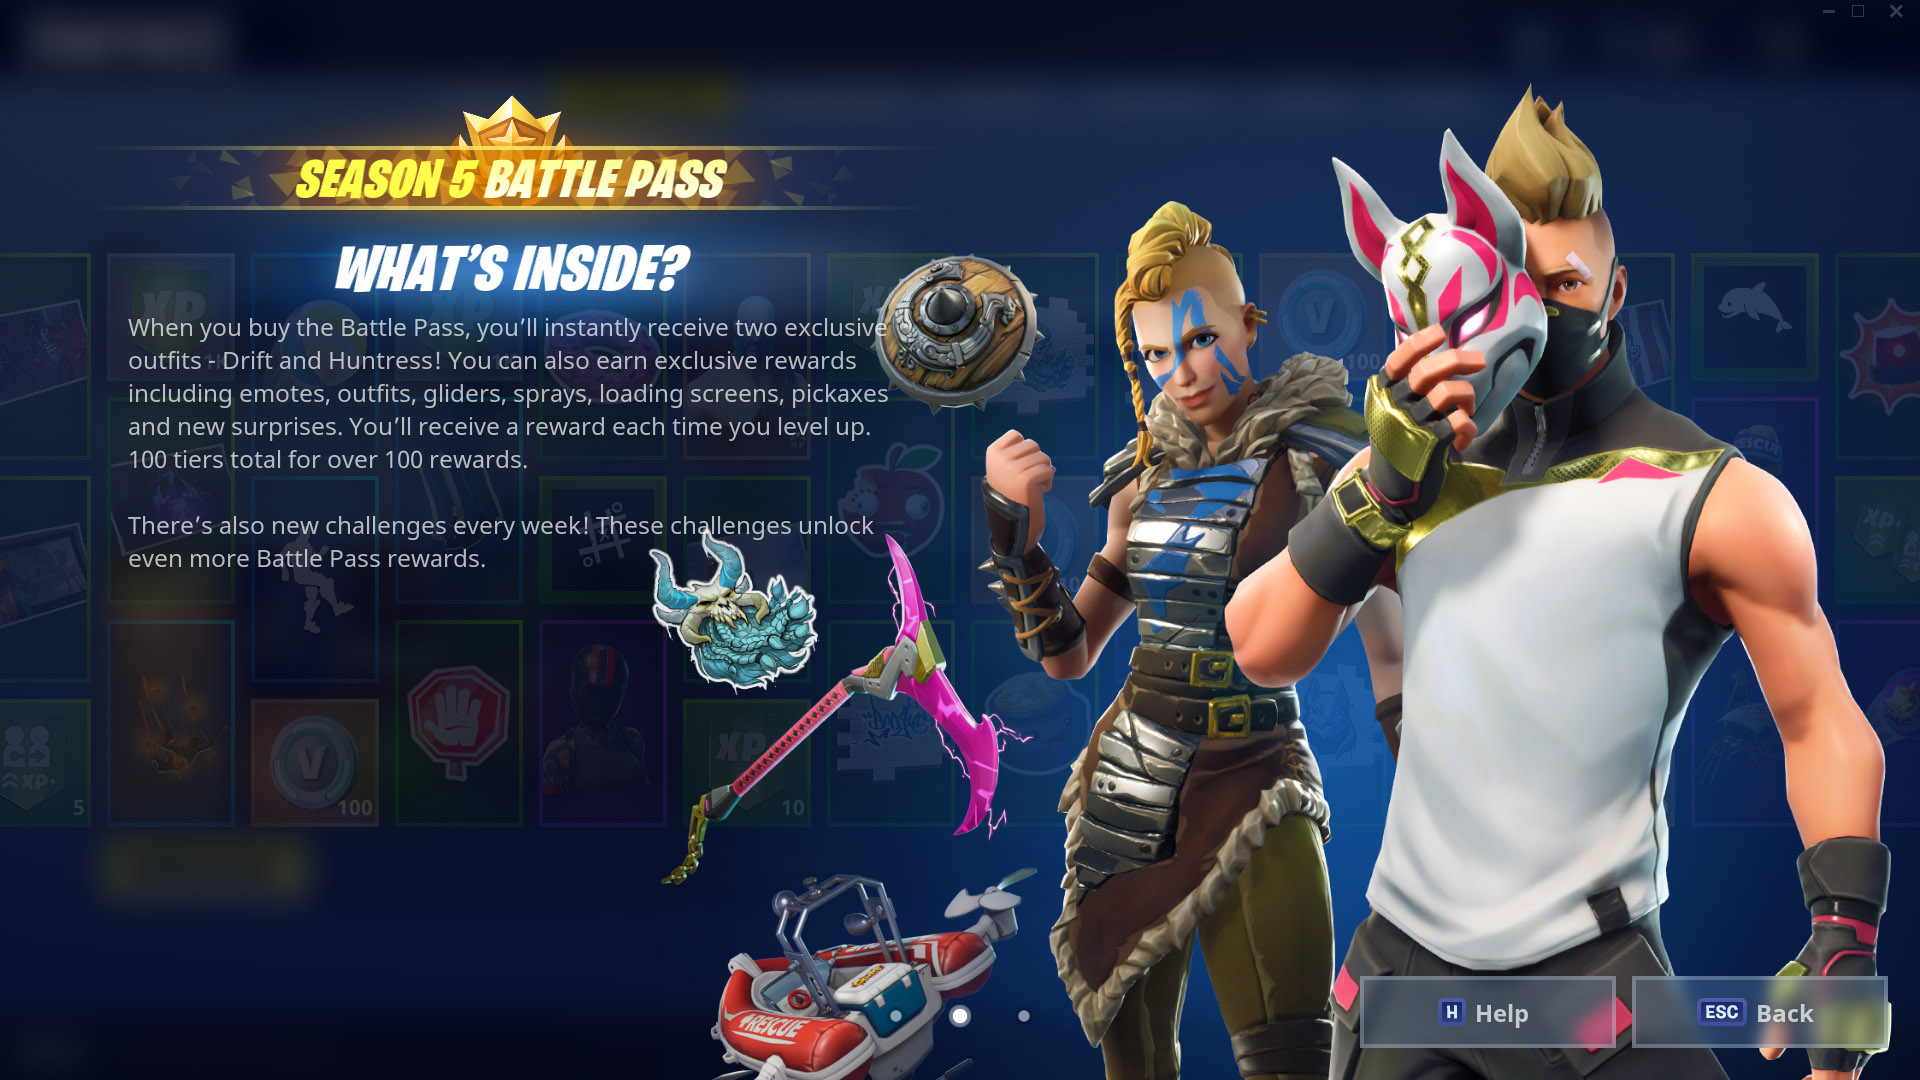 How to Level Up Fast in Fortnite Season 5   Shacknews Probably the most obvious thing players can do to level up fast is to focus  on the challenges  Whether the challenges are the free ones offered for all